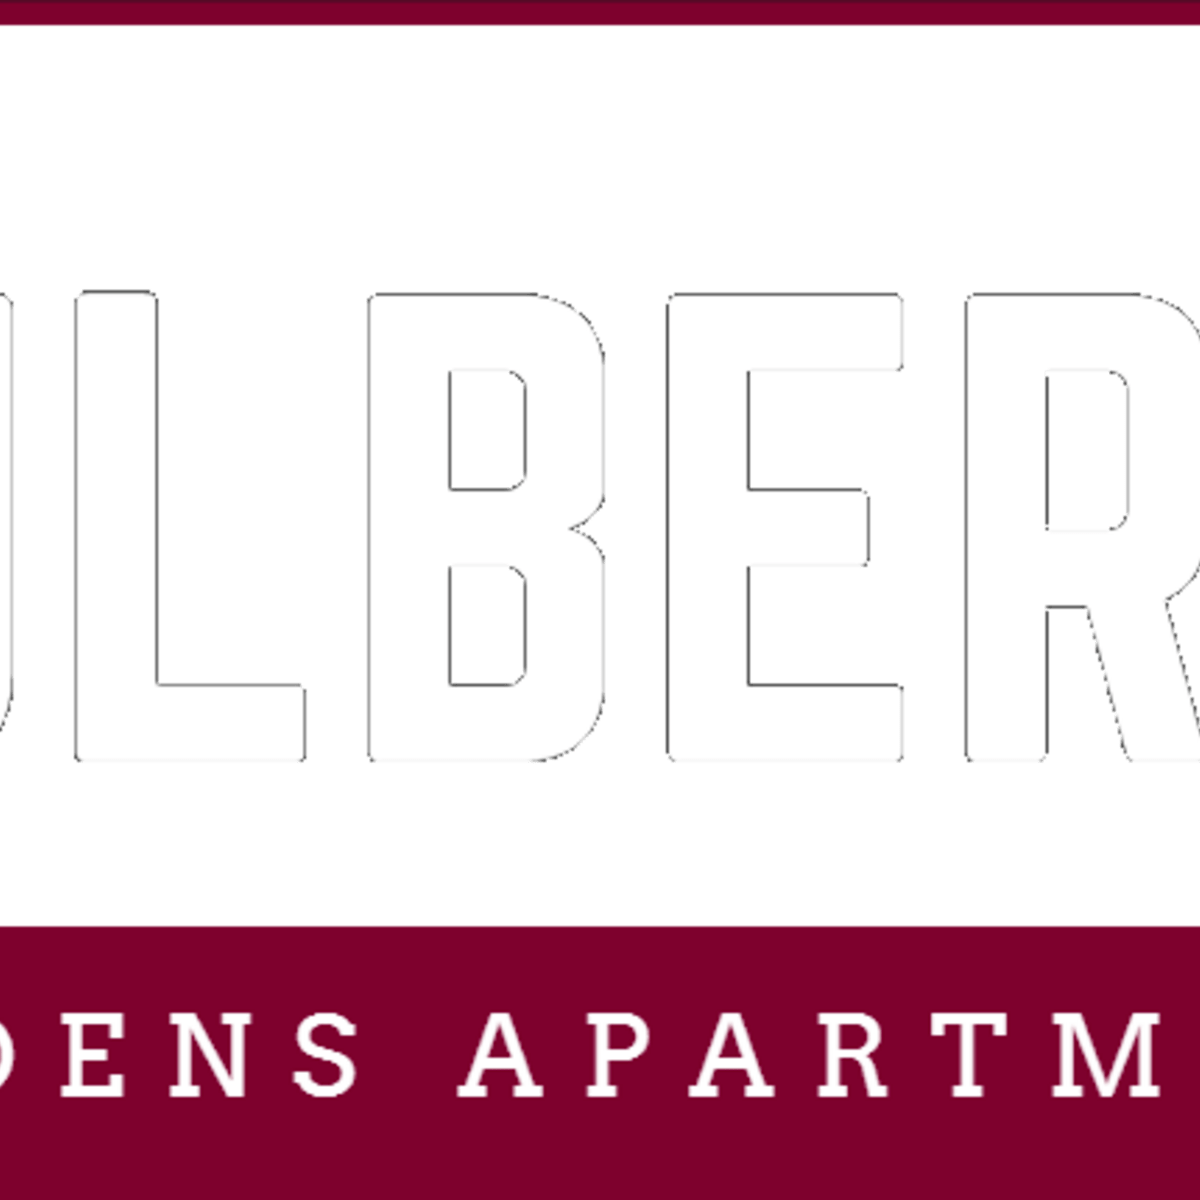 Apartments For Rent In Whittier Ca: Apartments For Rent In Whittier, CA